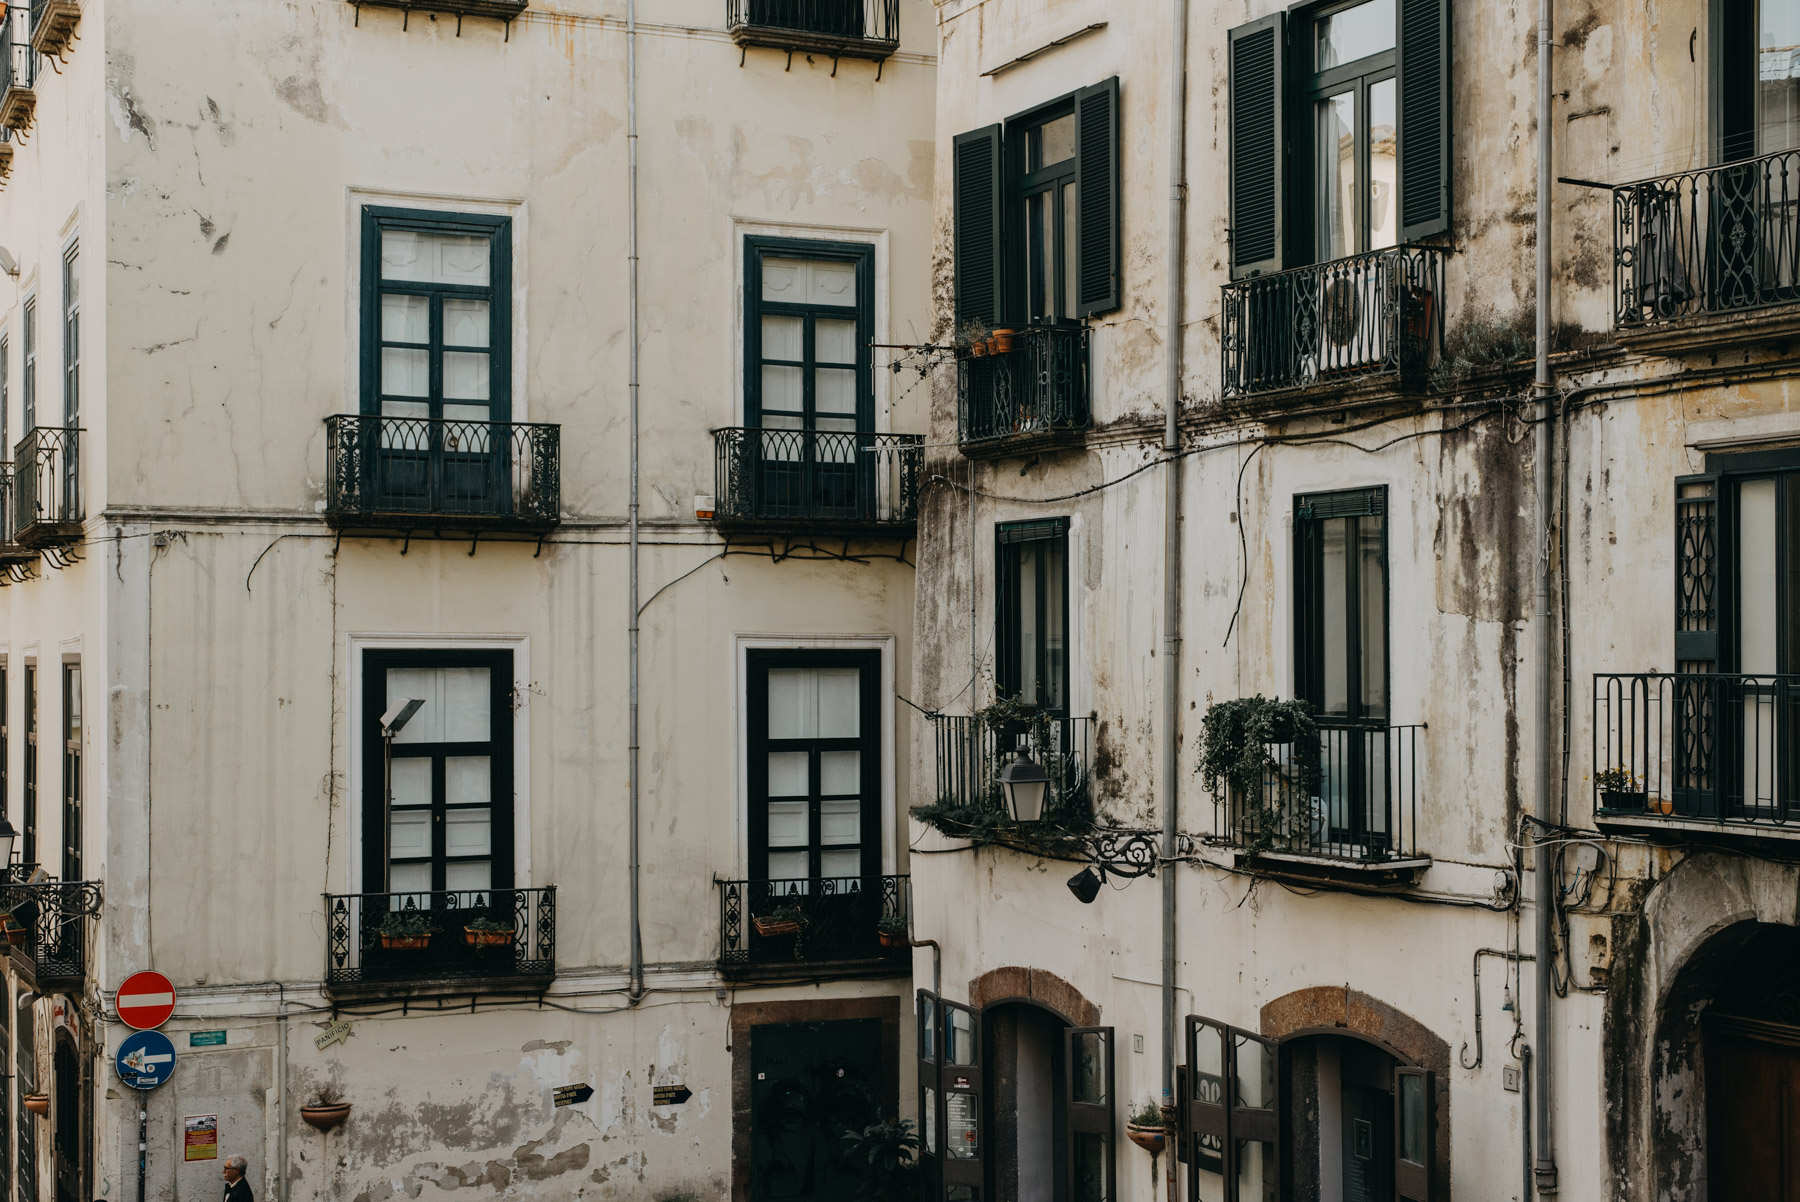 street photography in the city of Salerno, pictured a detail of balconies